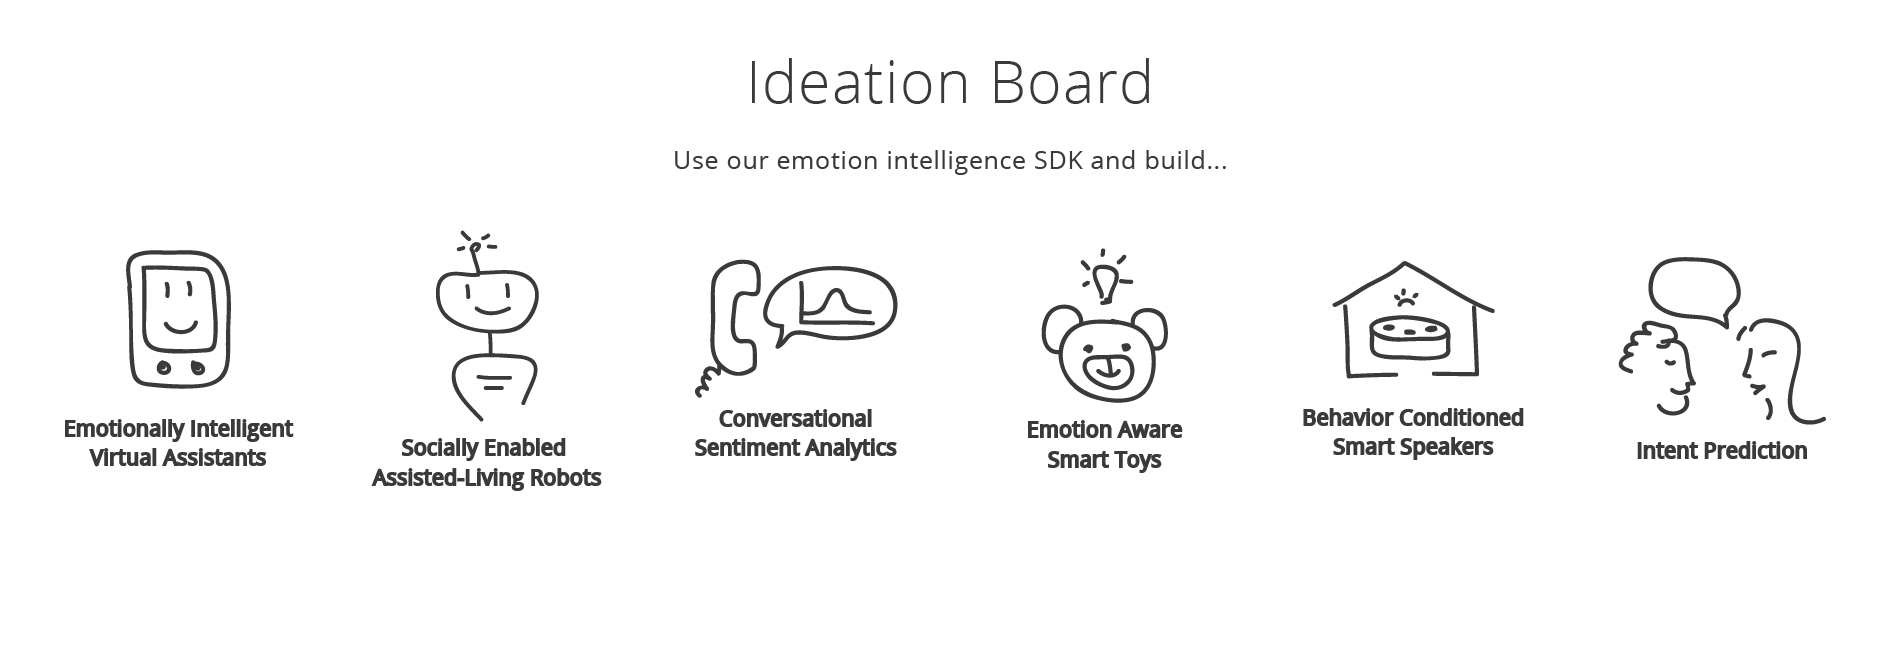 emotionAI ideation board